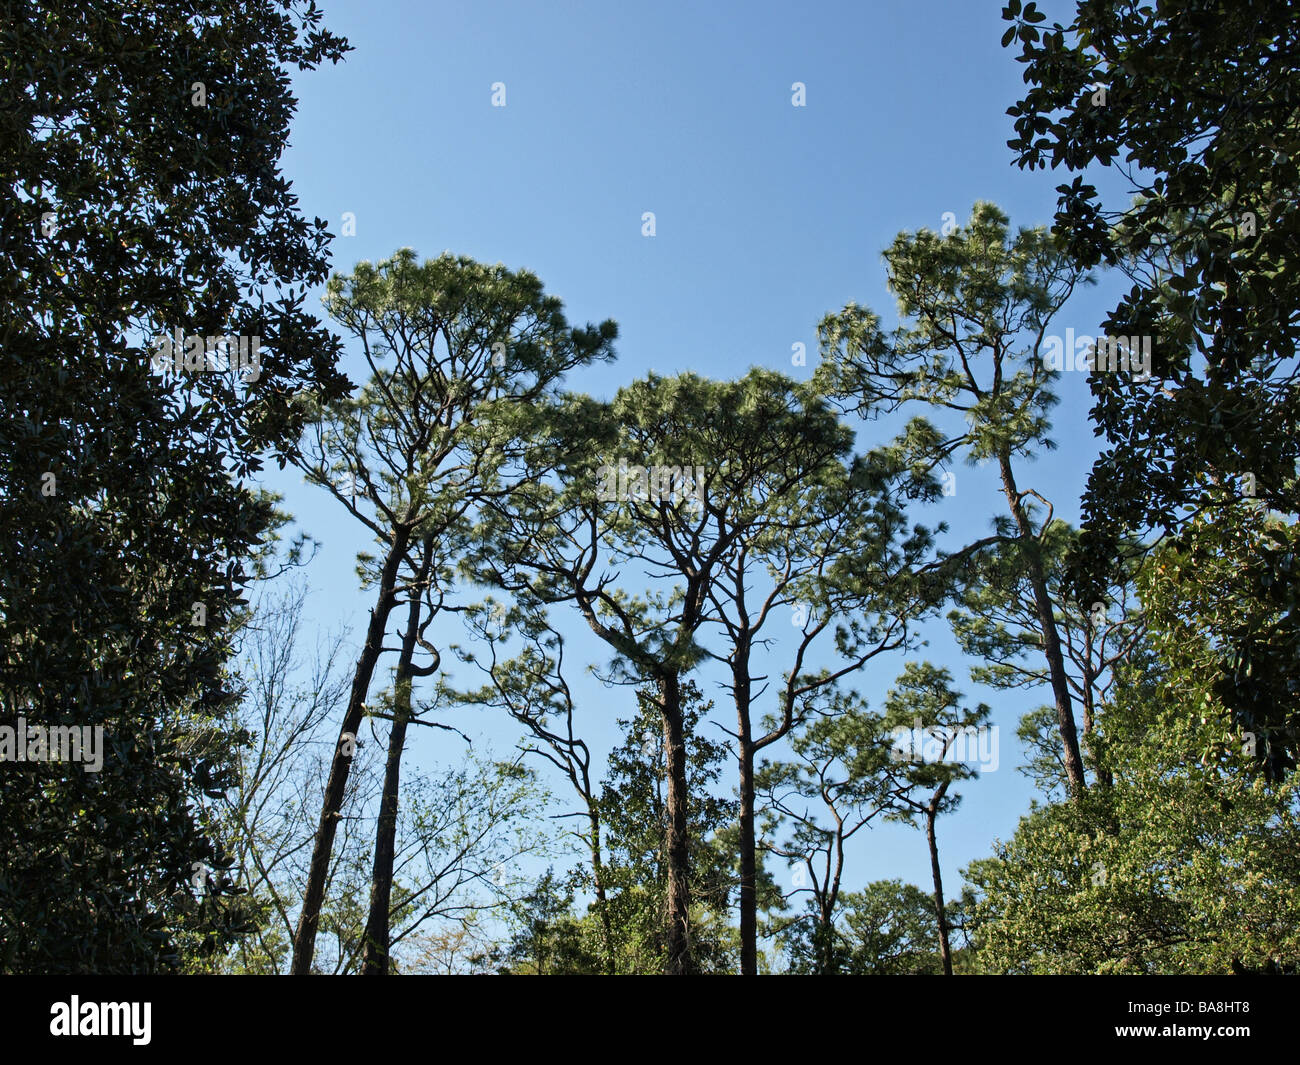 southern tall pine pines bracketed by closer trees against a blue sky upward view - Stock Image